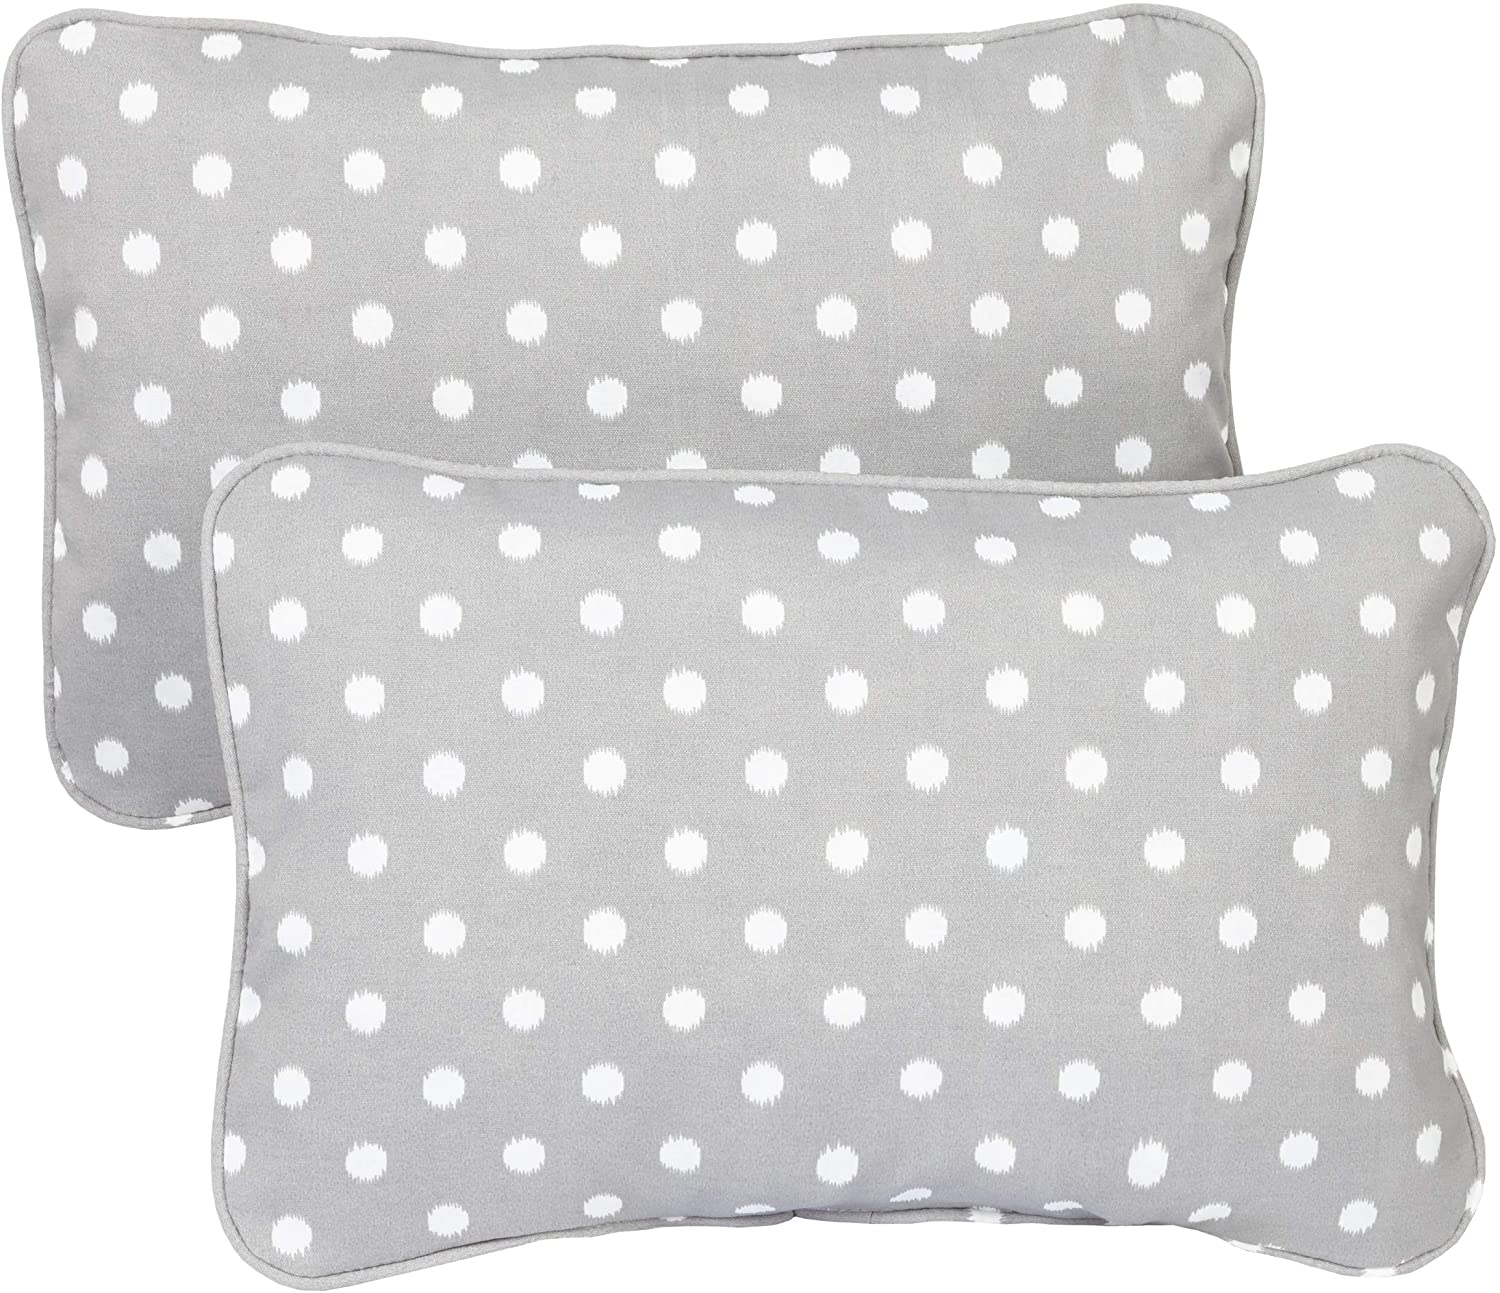 Grey Dots Corded 13 X 20 Inch Indoor/Outdoor Throw Pillows (Set 2) Polka Modern Contemporary Transitional Polyester Fade Resistant Uv Water